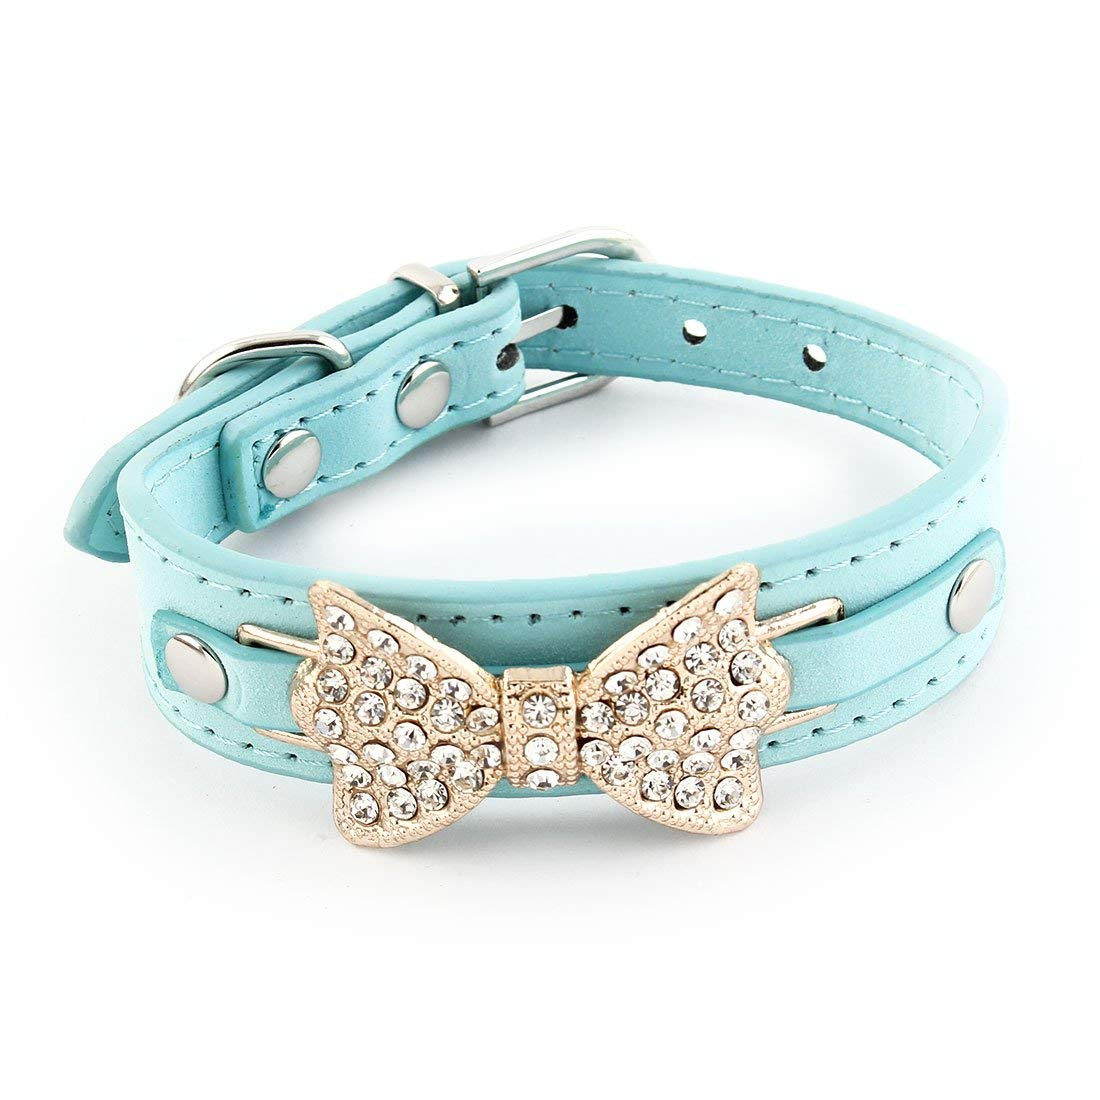 Faux Leather Bowknot Decor Adjustable Belt Pet Puppy Dog Collar Size XS bluee